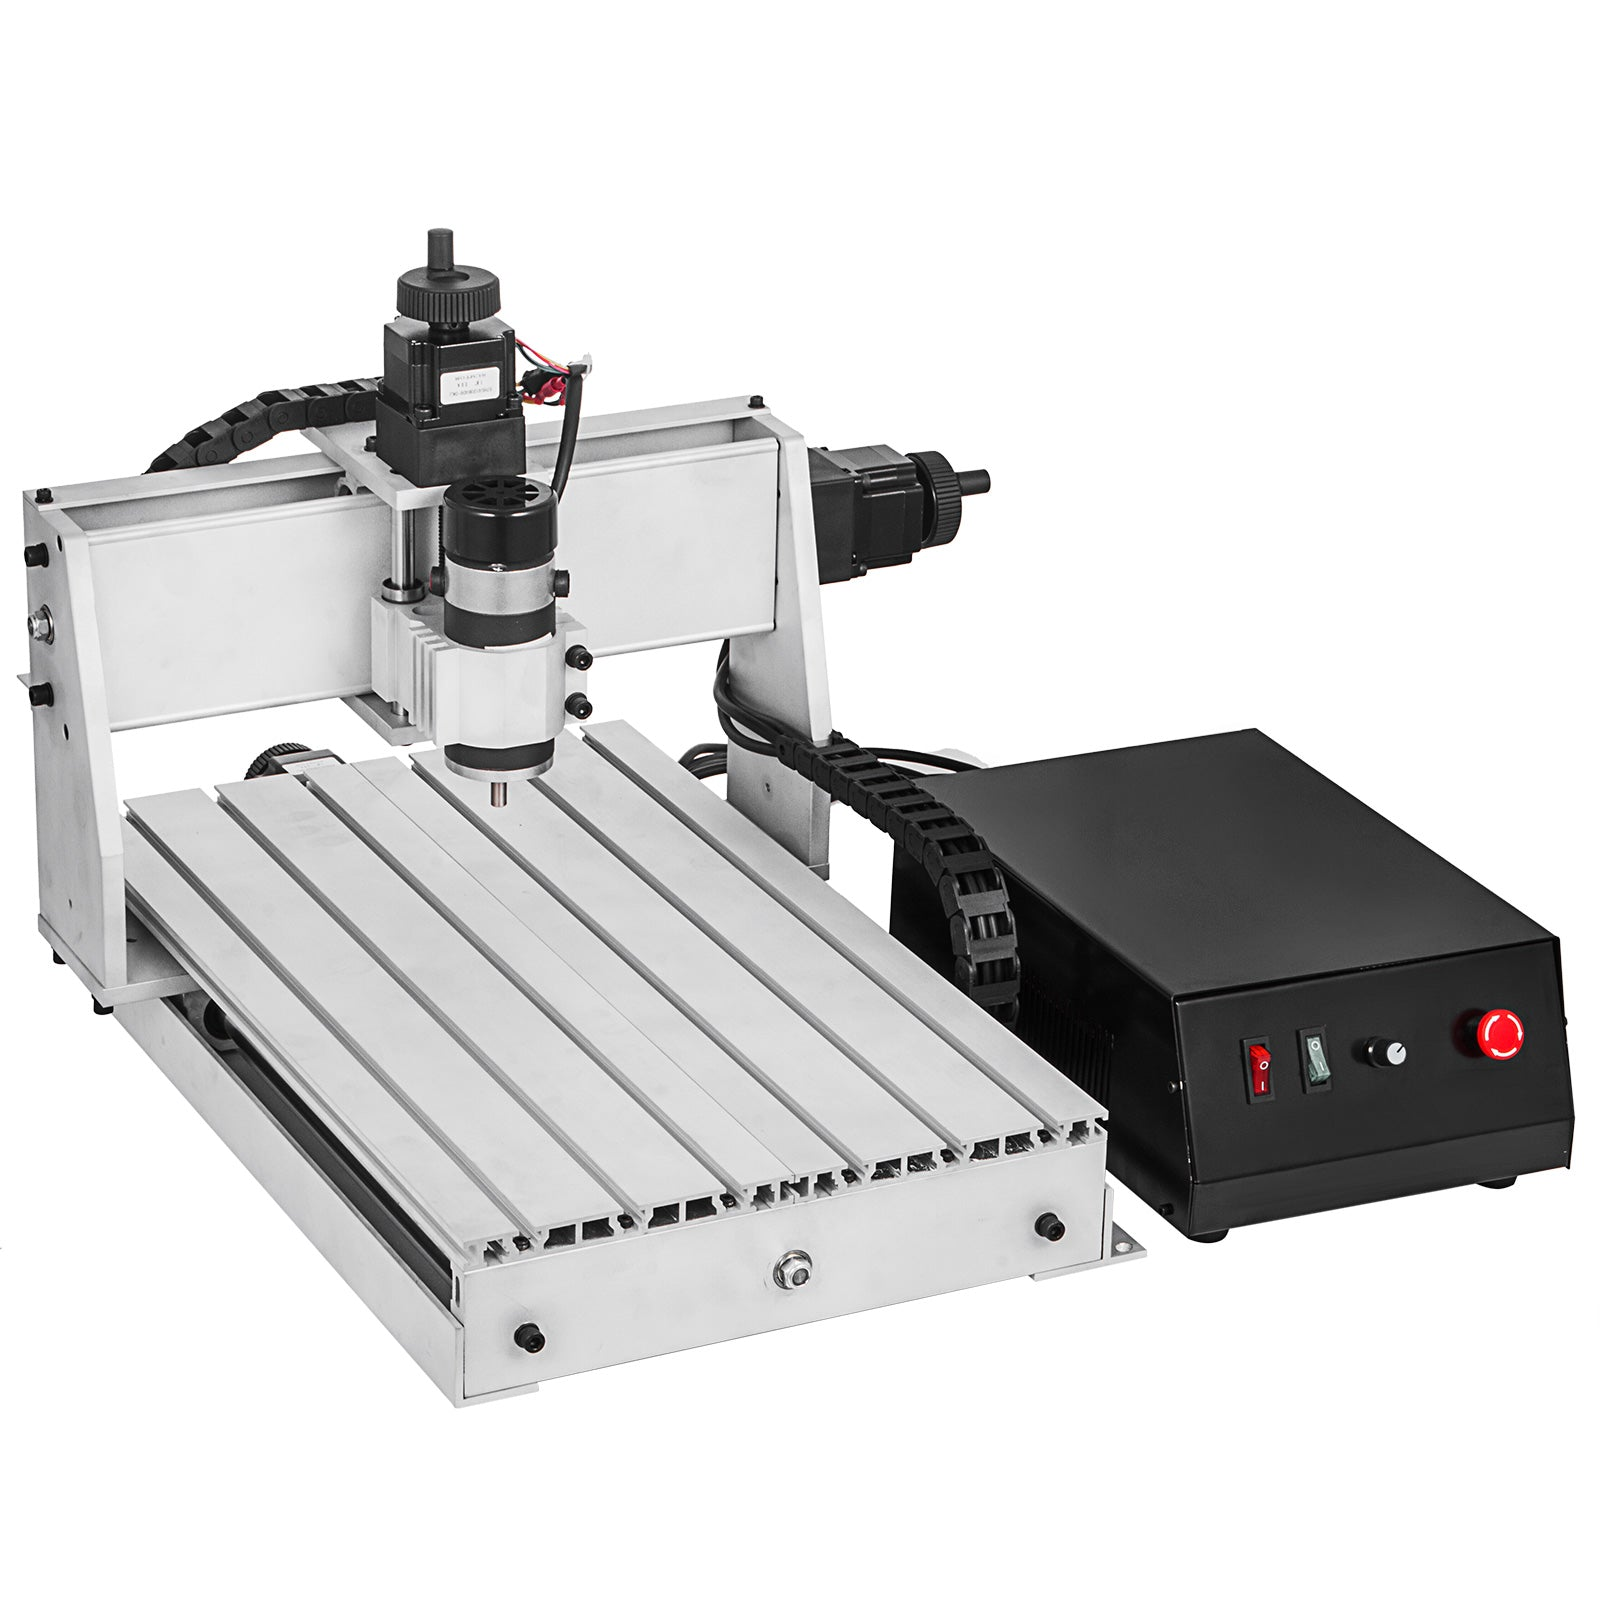 4 Axis Cnc Router 3040 Engraving Milling Machine 1202 Trapezoidal Screws Chrome